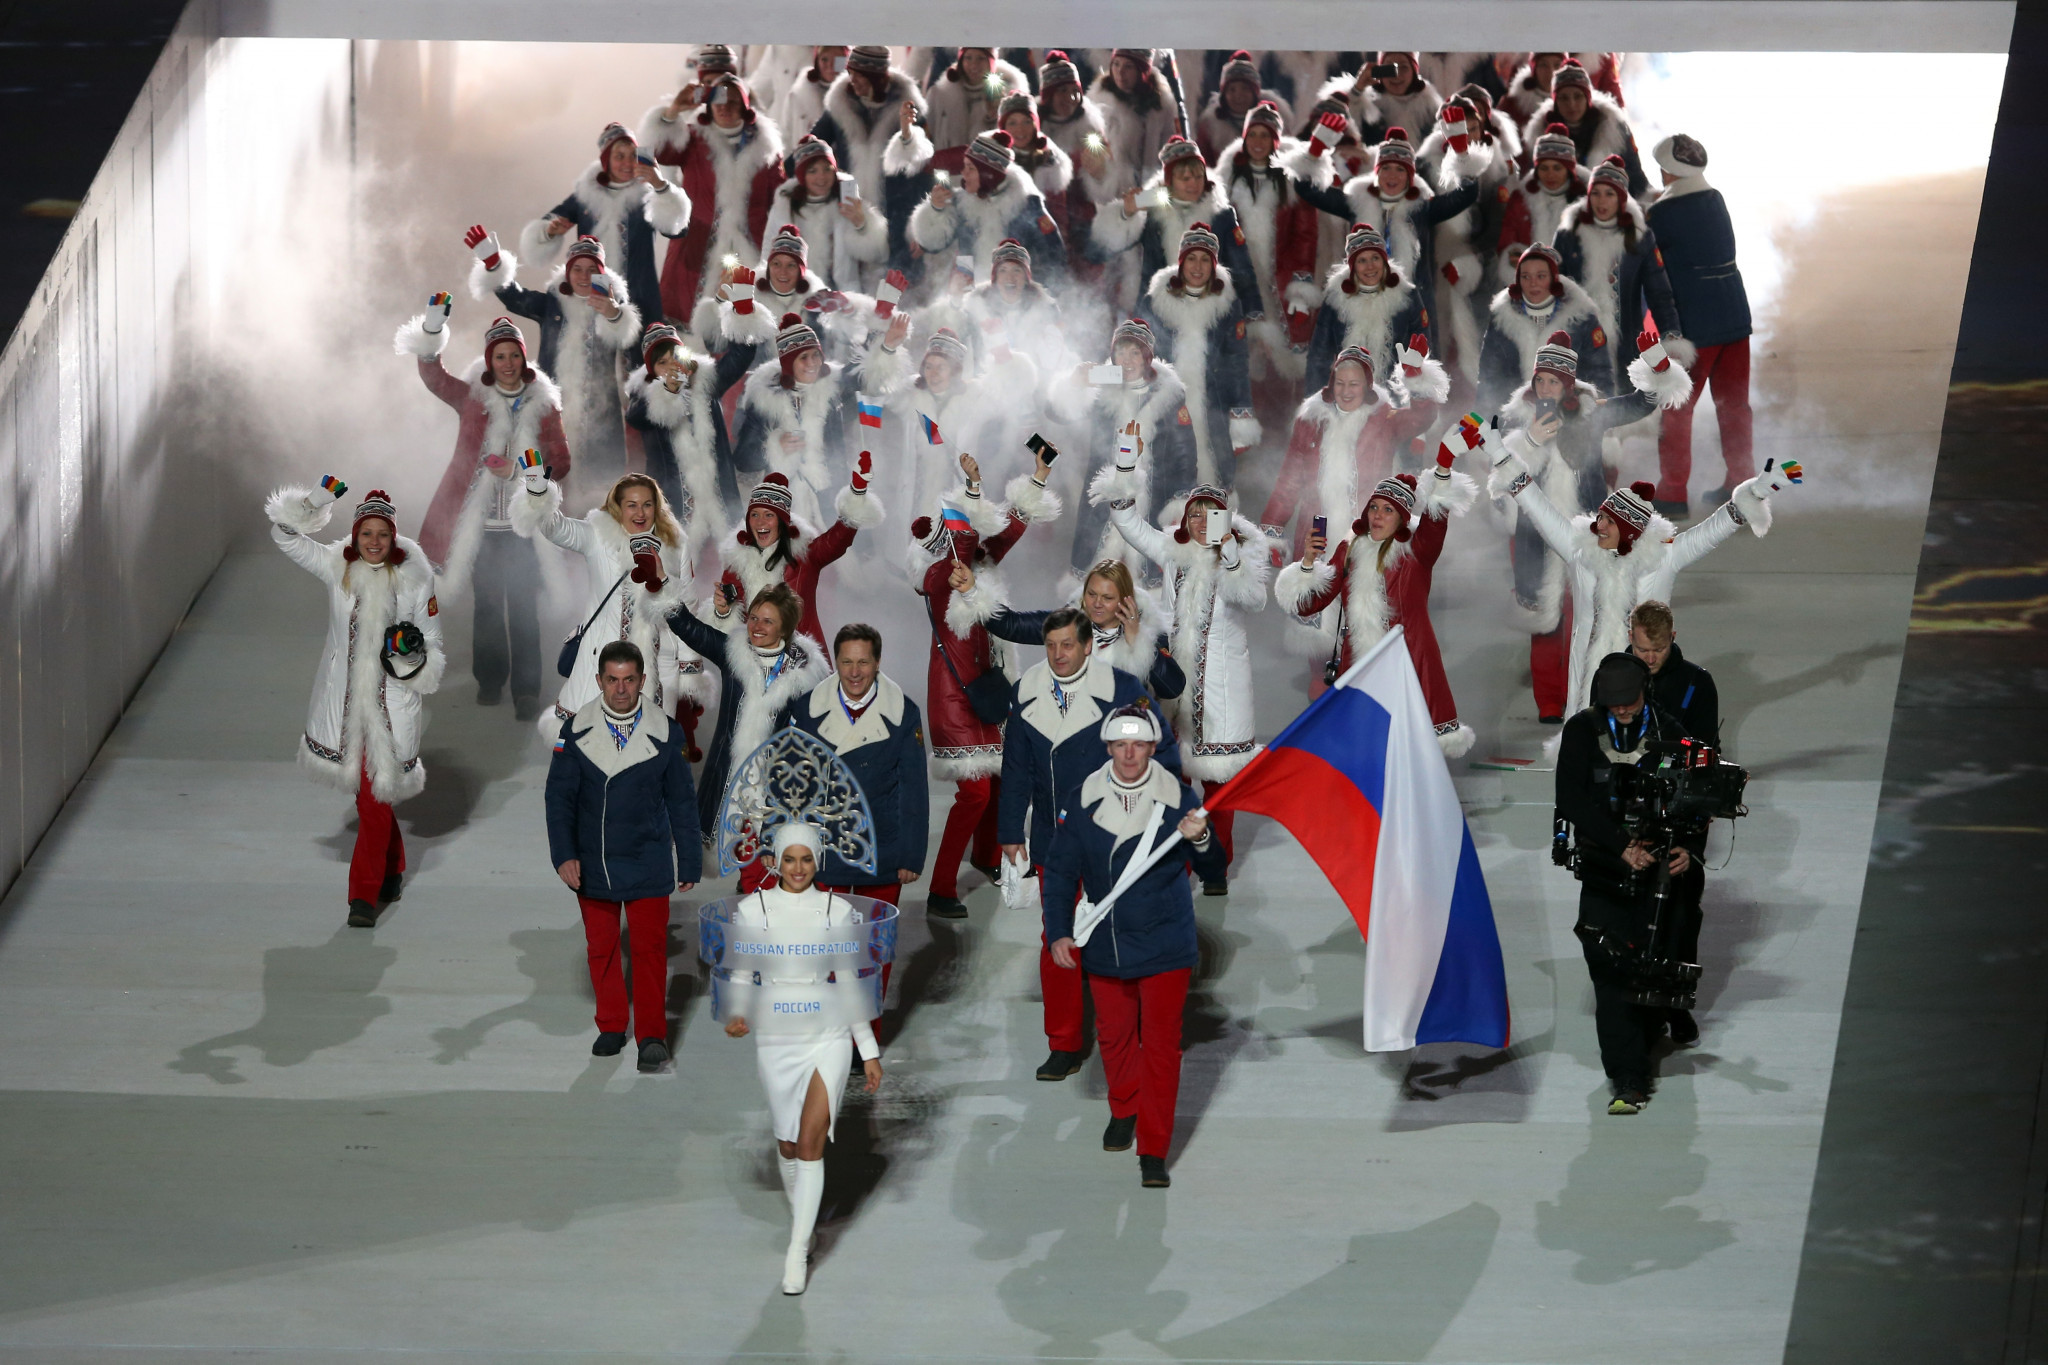 Russia are banned from marching under the country's own flag at the Opening Ceremony of Pyeongchang 2018 ©Getty Images